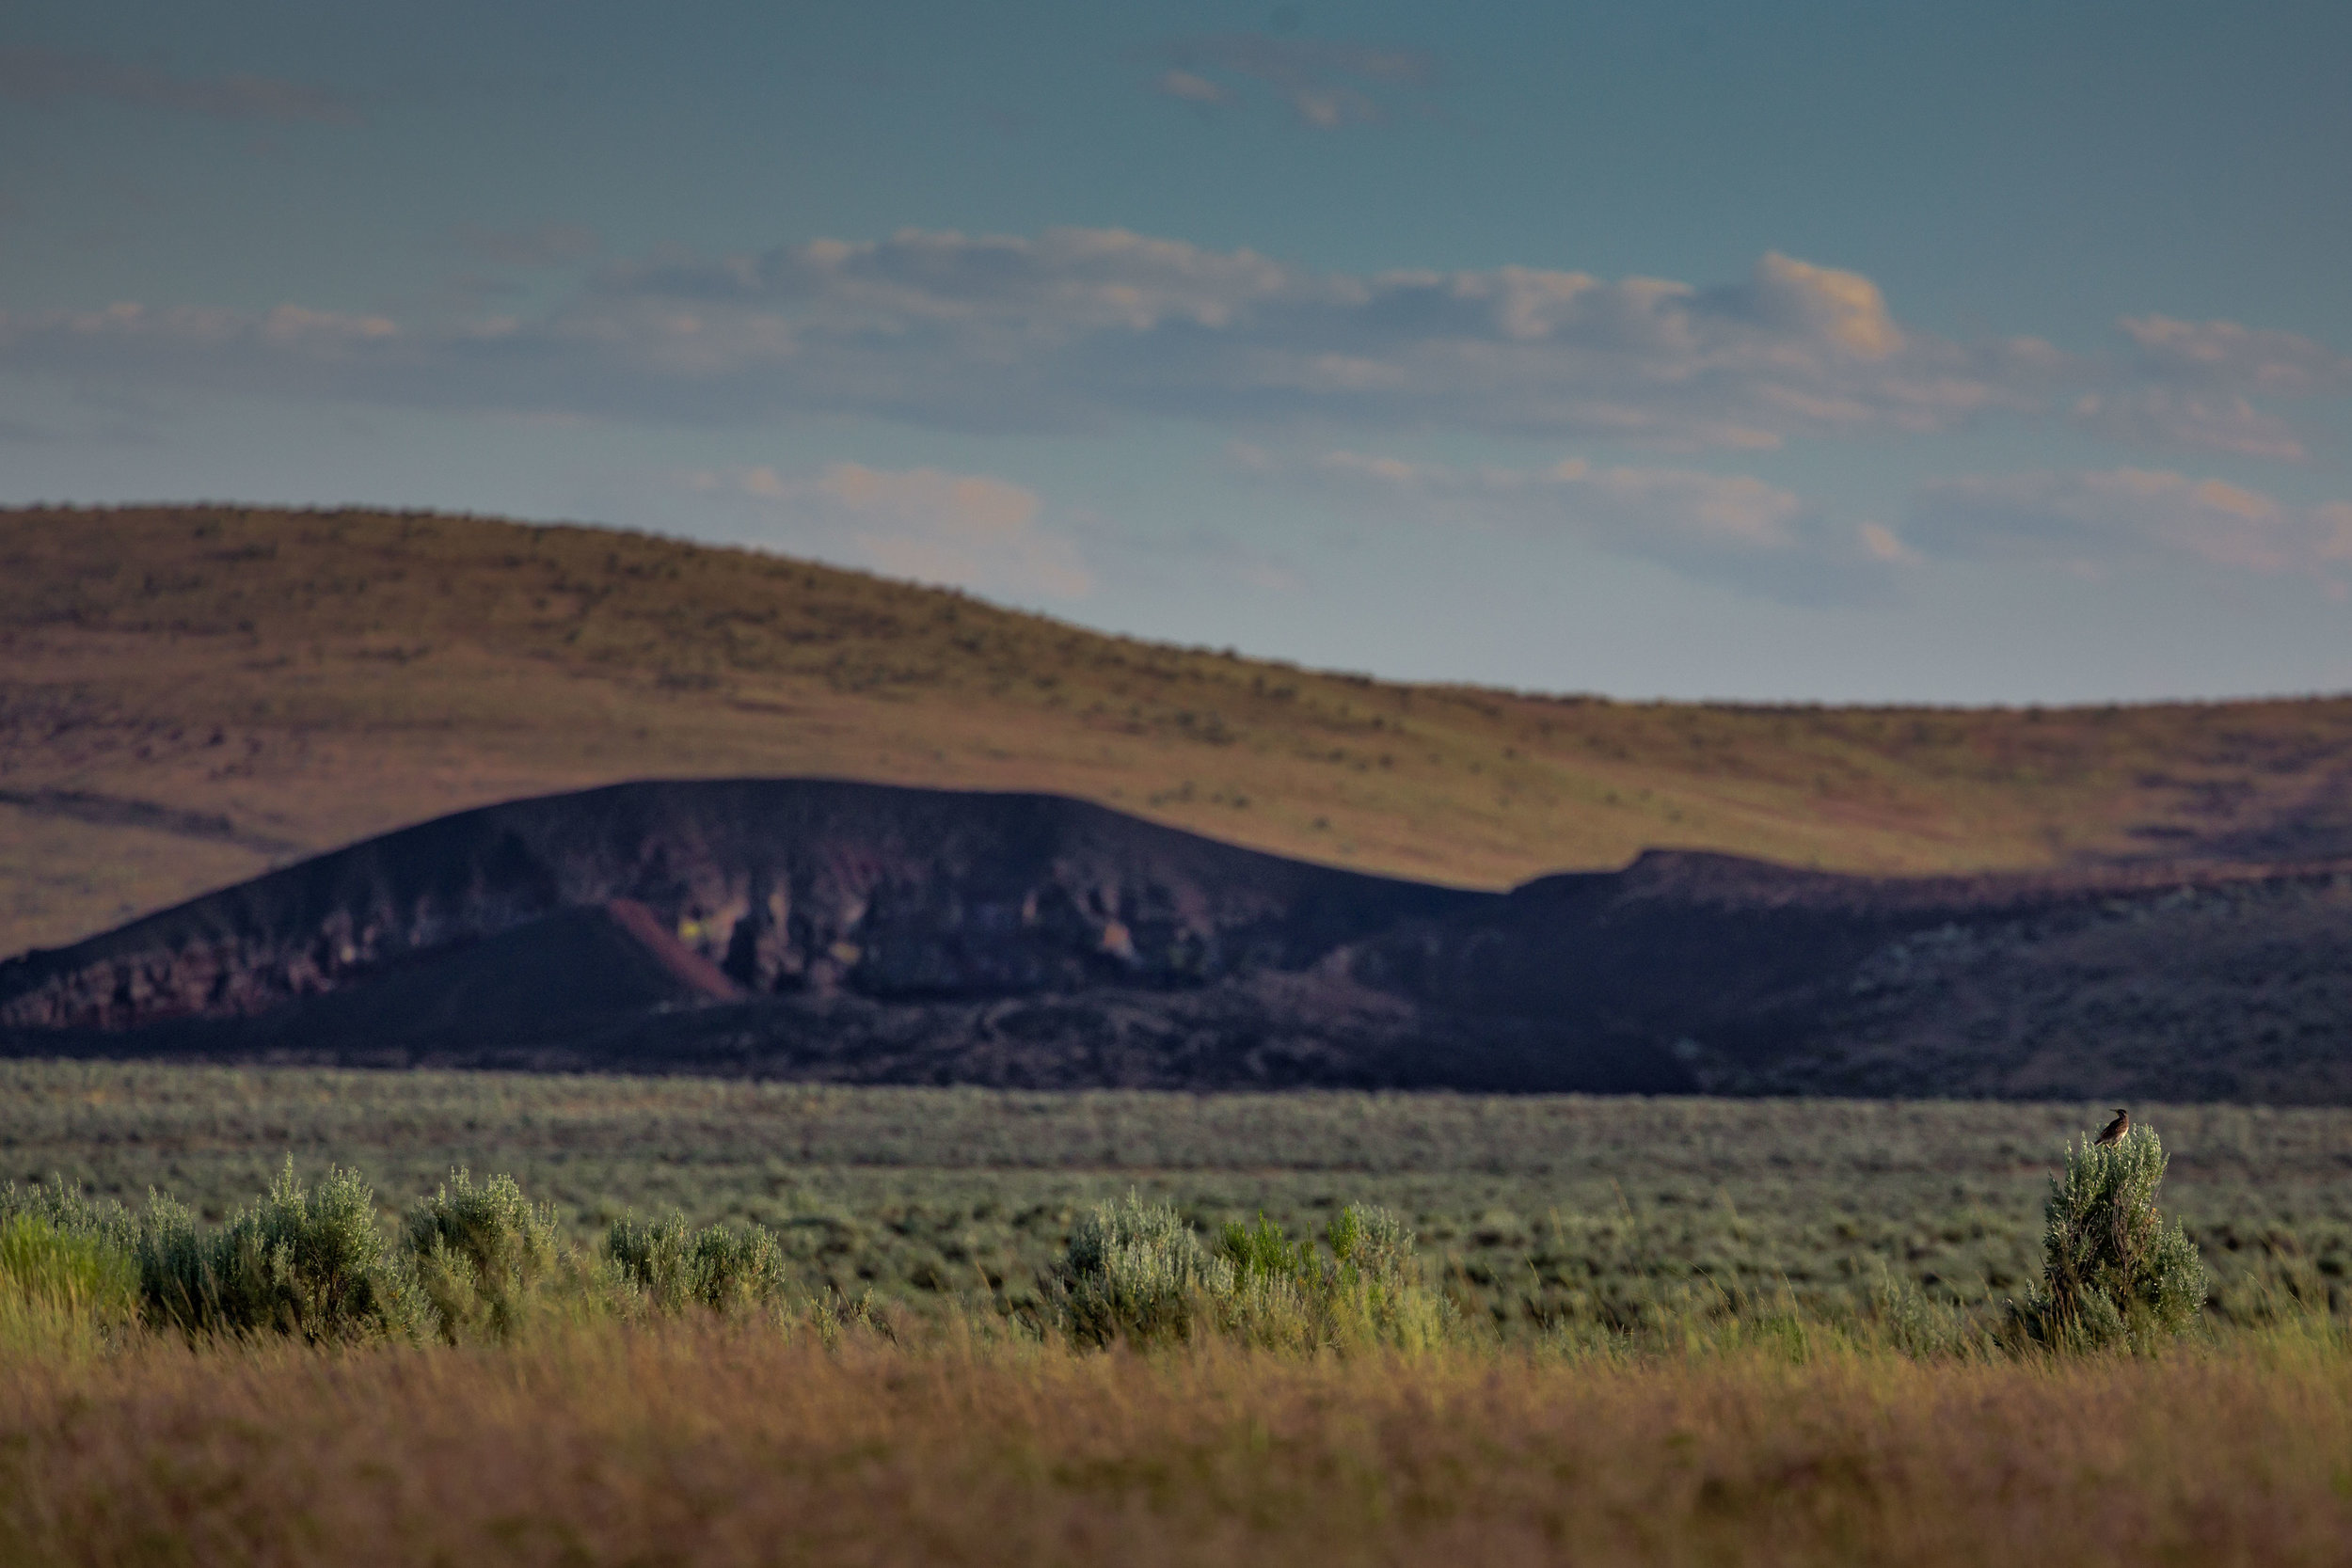 bird_crater_from_afar_MG_7828-1-copy.jpg